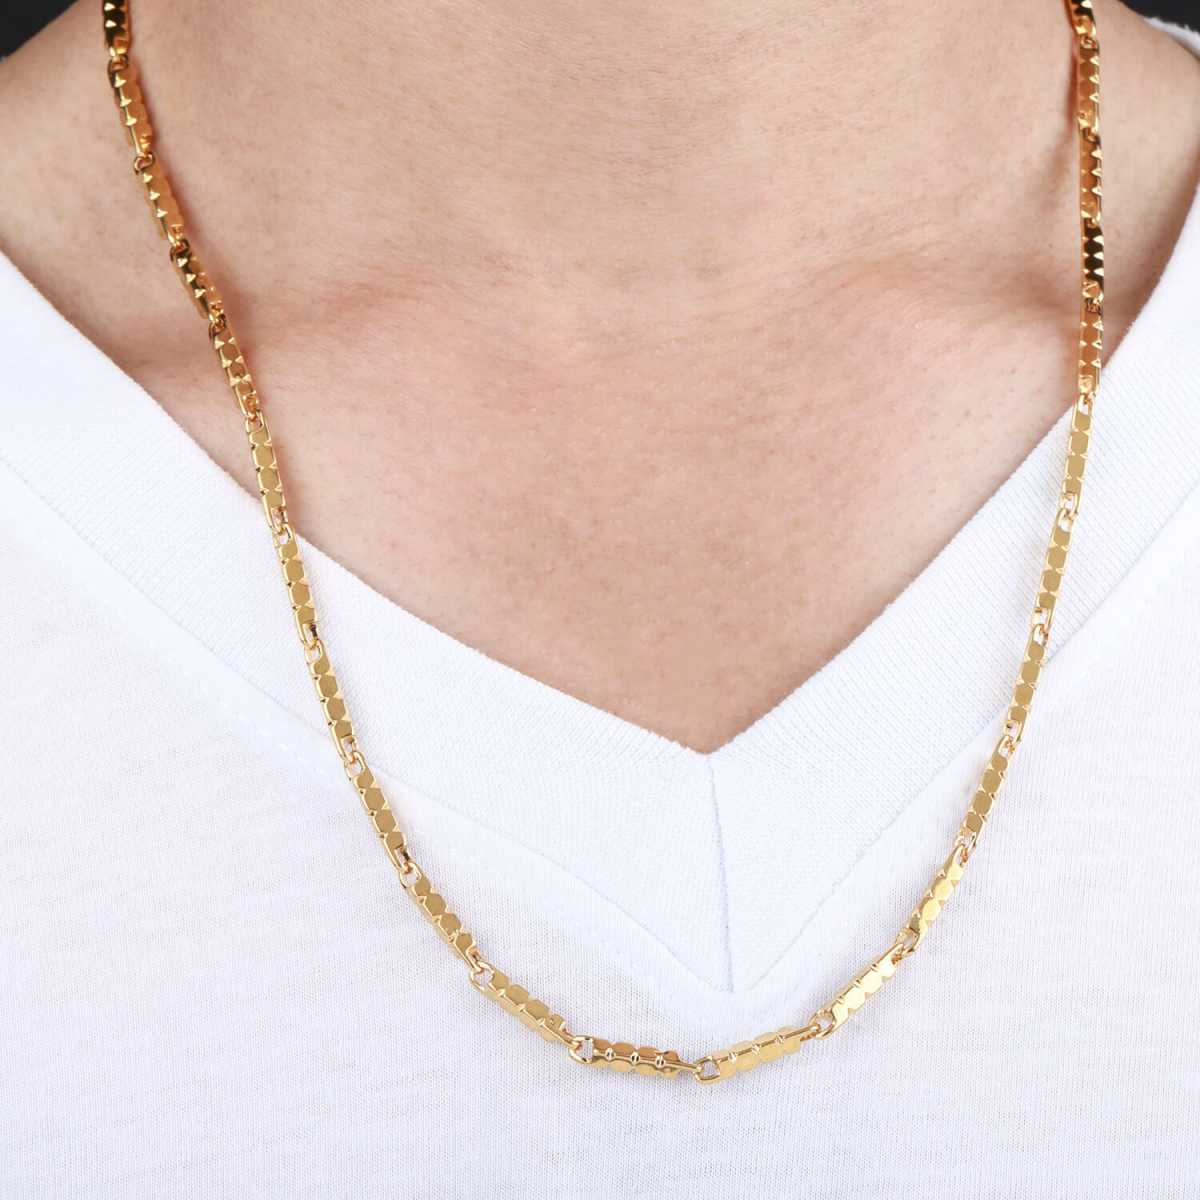 Goldplated Adorable Chain For Men and boy Jewellery